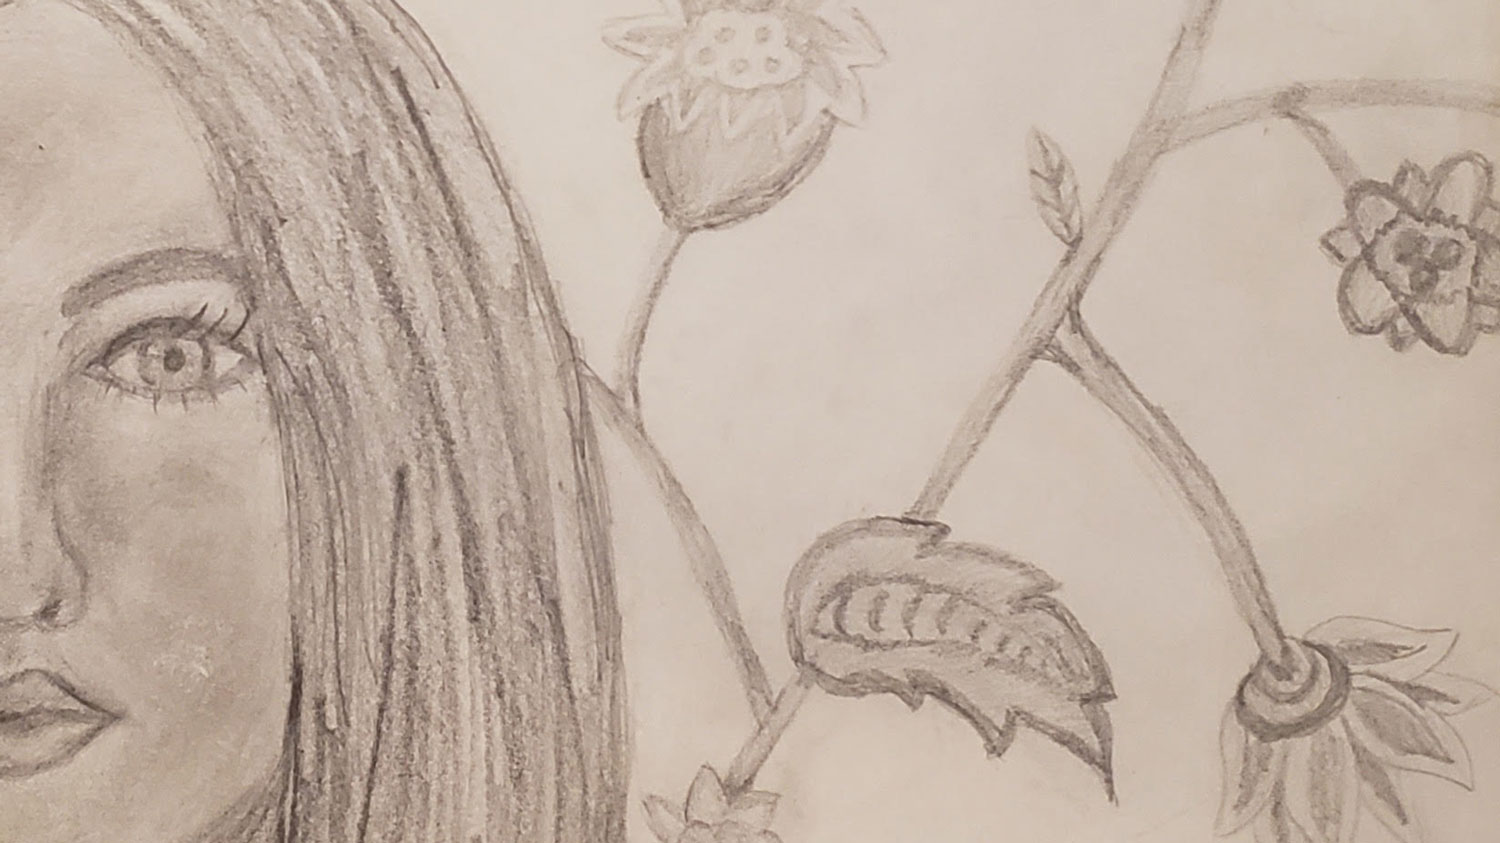 A drawing of a woman's face, leaves and flower buds.